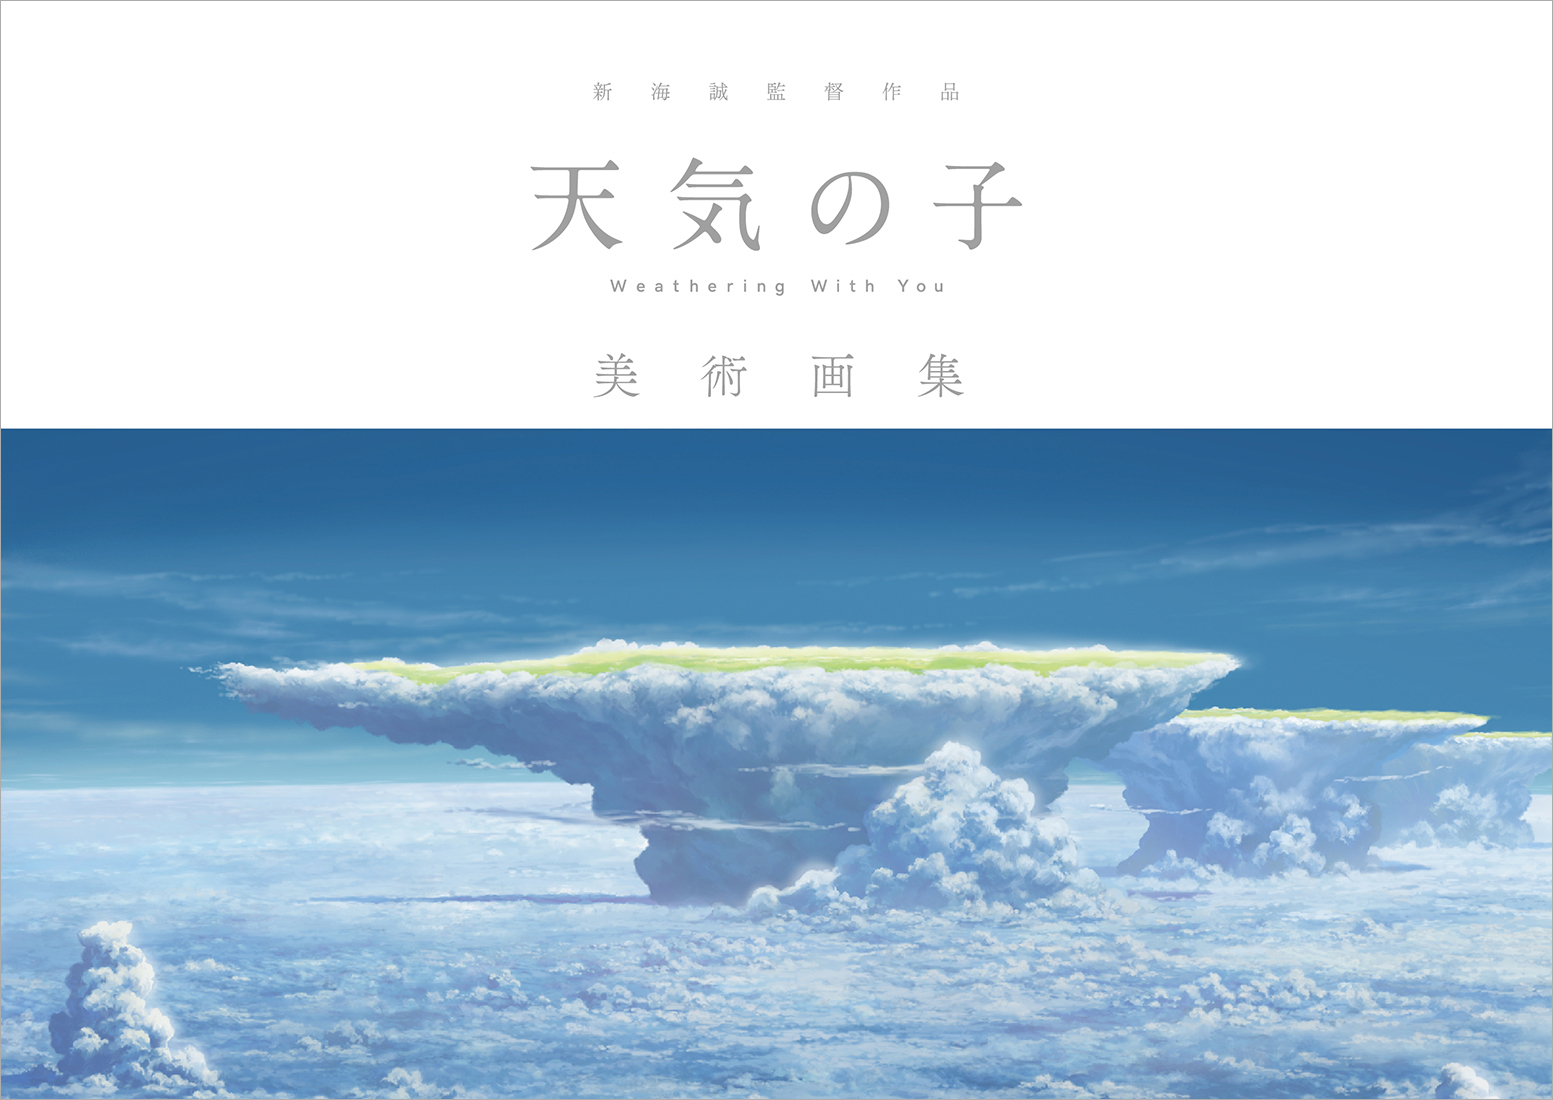 New Weathering With You Art Book Comes With Free Anime Backgrounds For Video Conference Calls Soranews24 Japan News